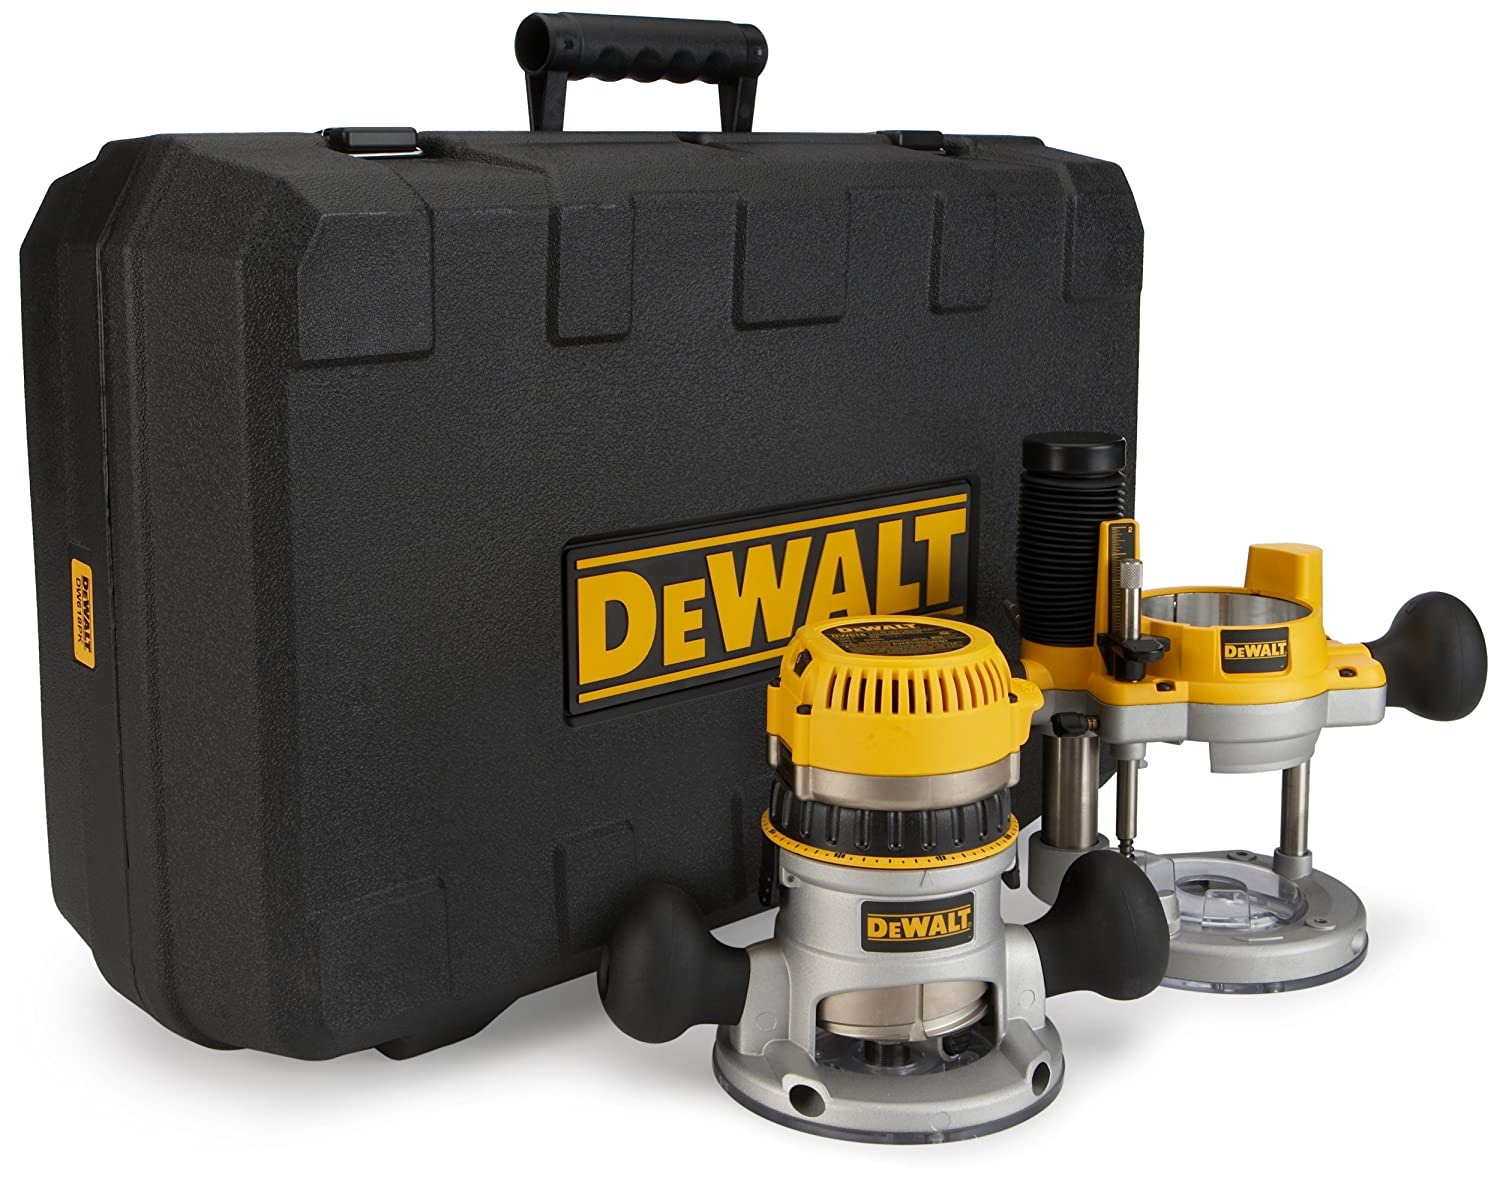 dewalt router kit. dewalt dw618pk 12 amp 2-1/4 hp plunge- and fixed-base variable-speed router kit with 1/4-inch 1/2-inch collets: amazon.ca: tools \u0026 home improvement dewalt